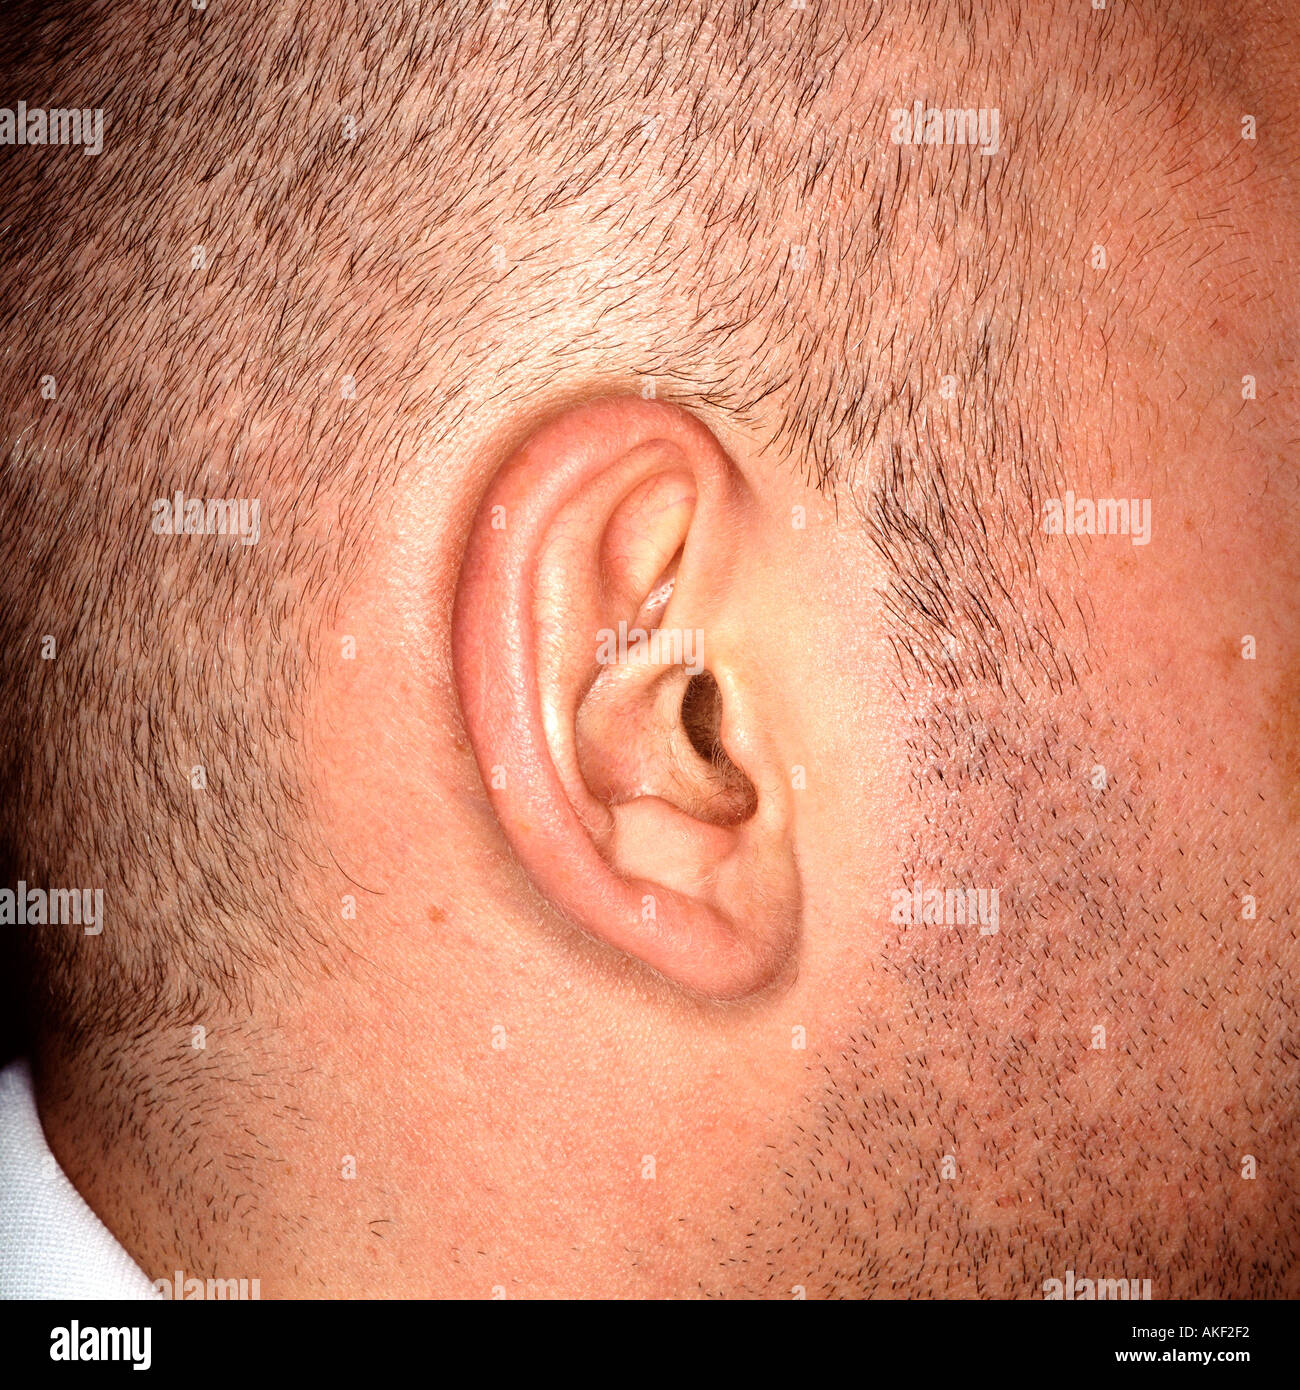 Right ear of Caucasian male - Stock Image